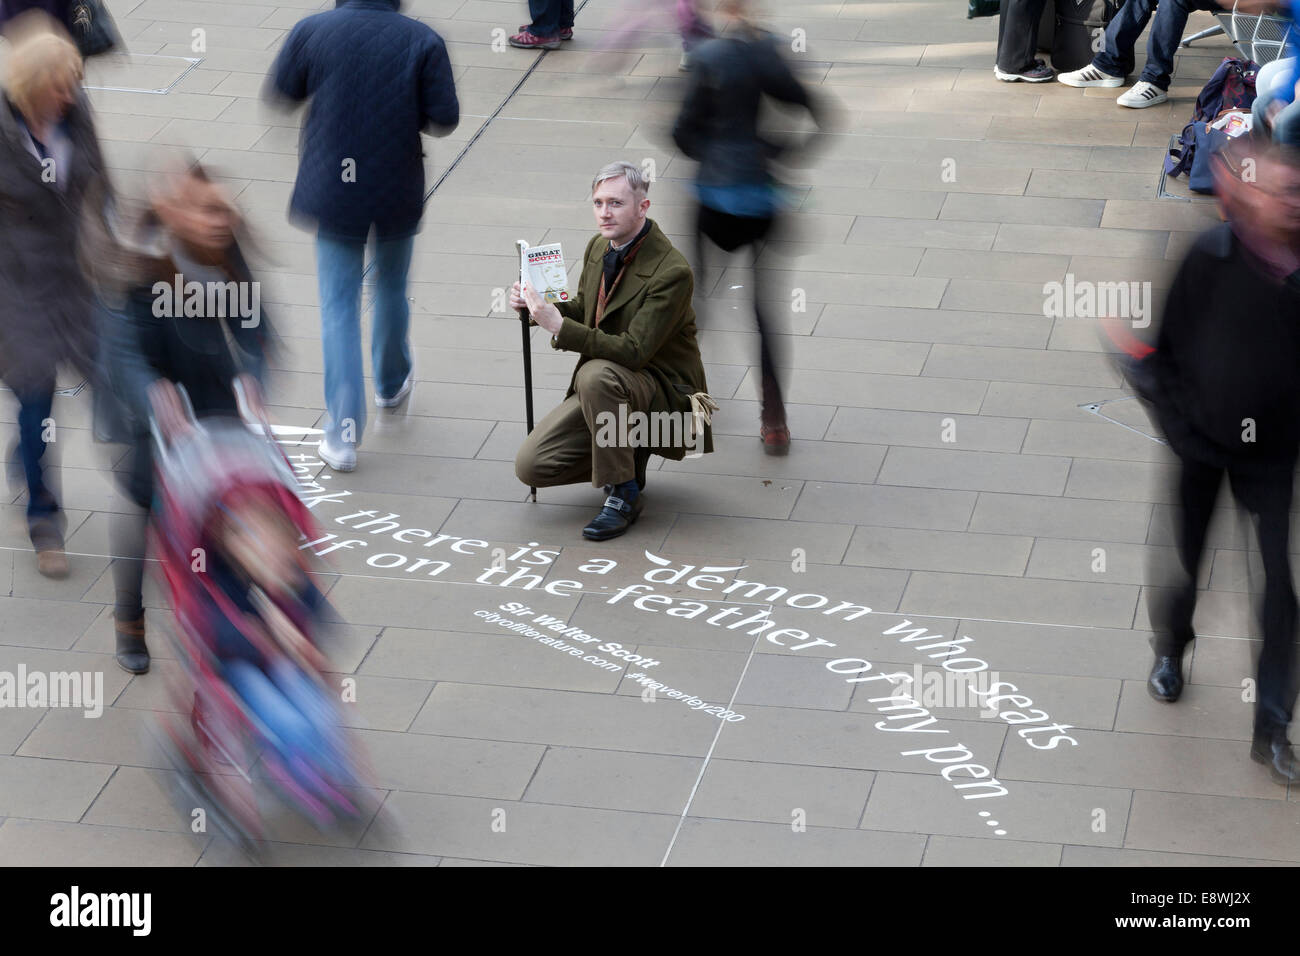 Edinburgh, Scotland, UK. 14th October, 2014. Quotes from Sir Walter Scott's first published novel 'Waverley' - Stock Image